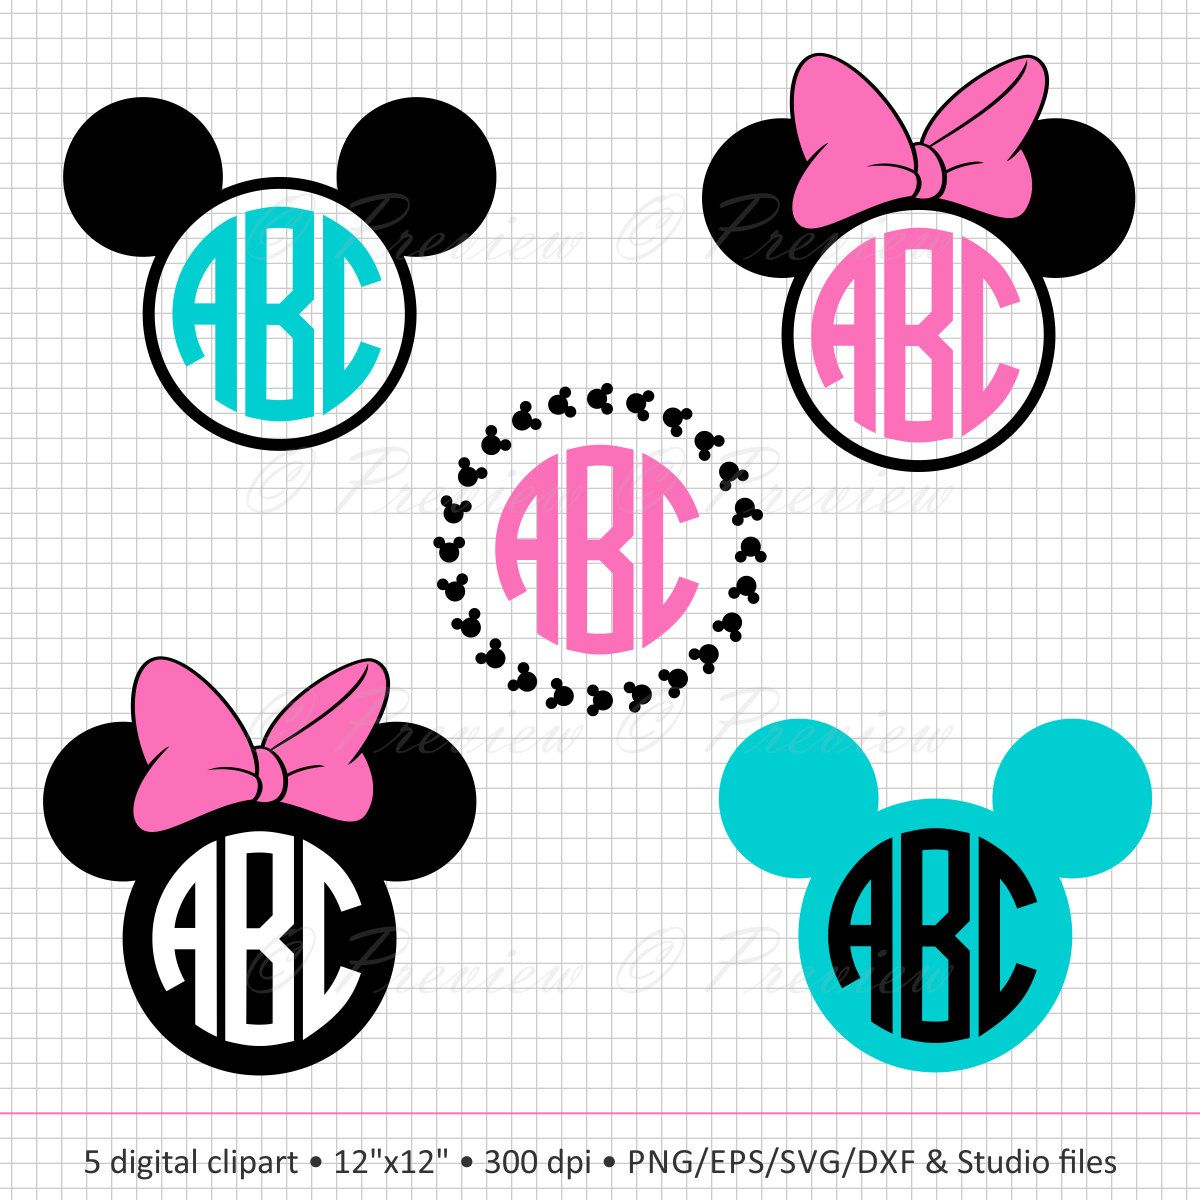 Buy 2 Get 1 Free! Digital Clipart Mickey Mouse Frames